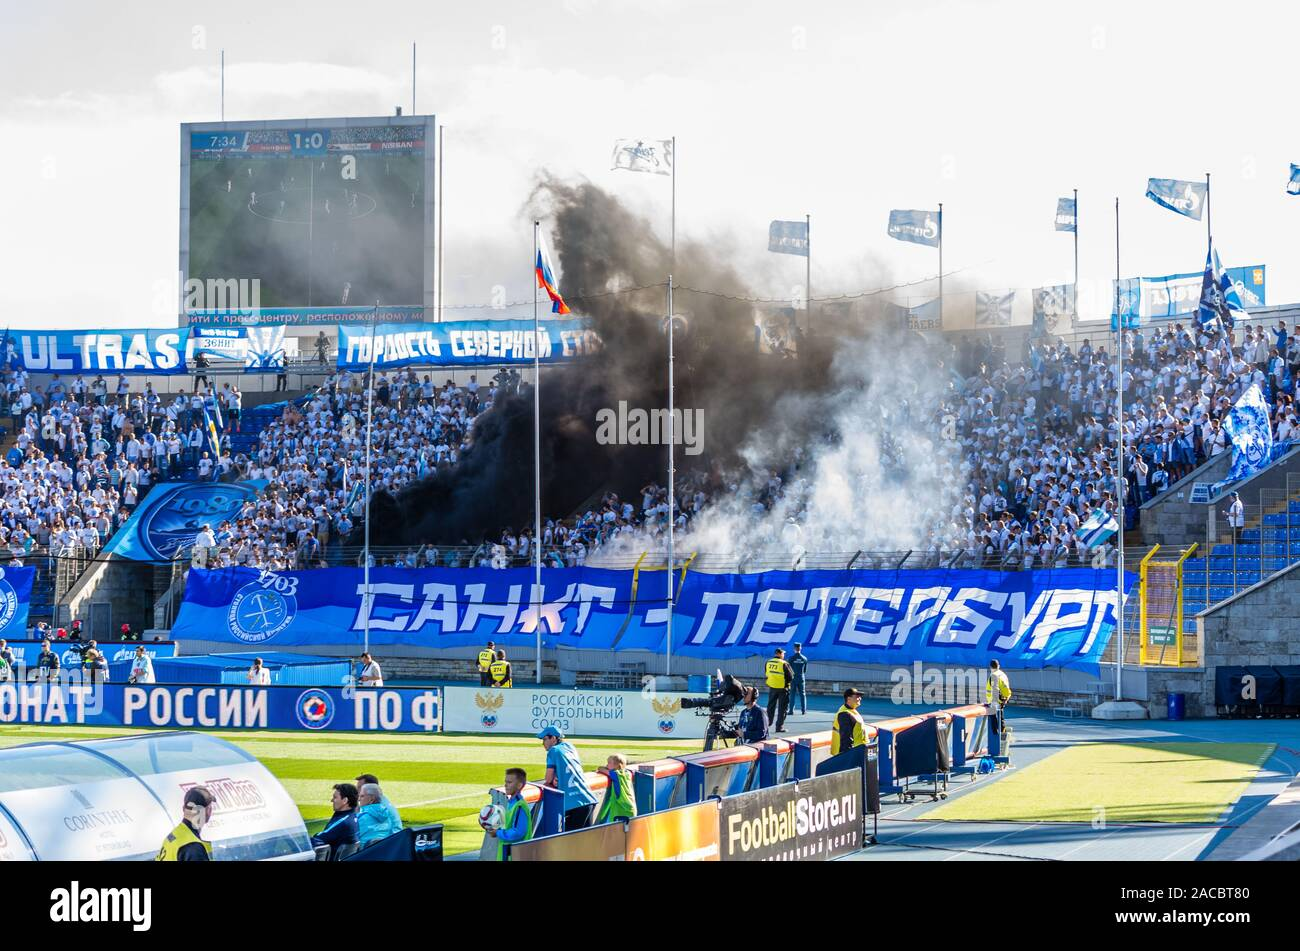 Saint Petersburg Russia August 1 Fans Of Football Club Zenit At The Match Of Championship Of Russia On August 1 2015 In Saint Petersburg Russia Stock Photo Alamy